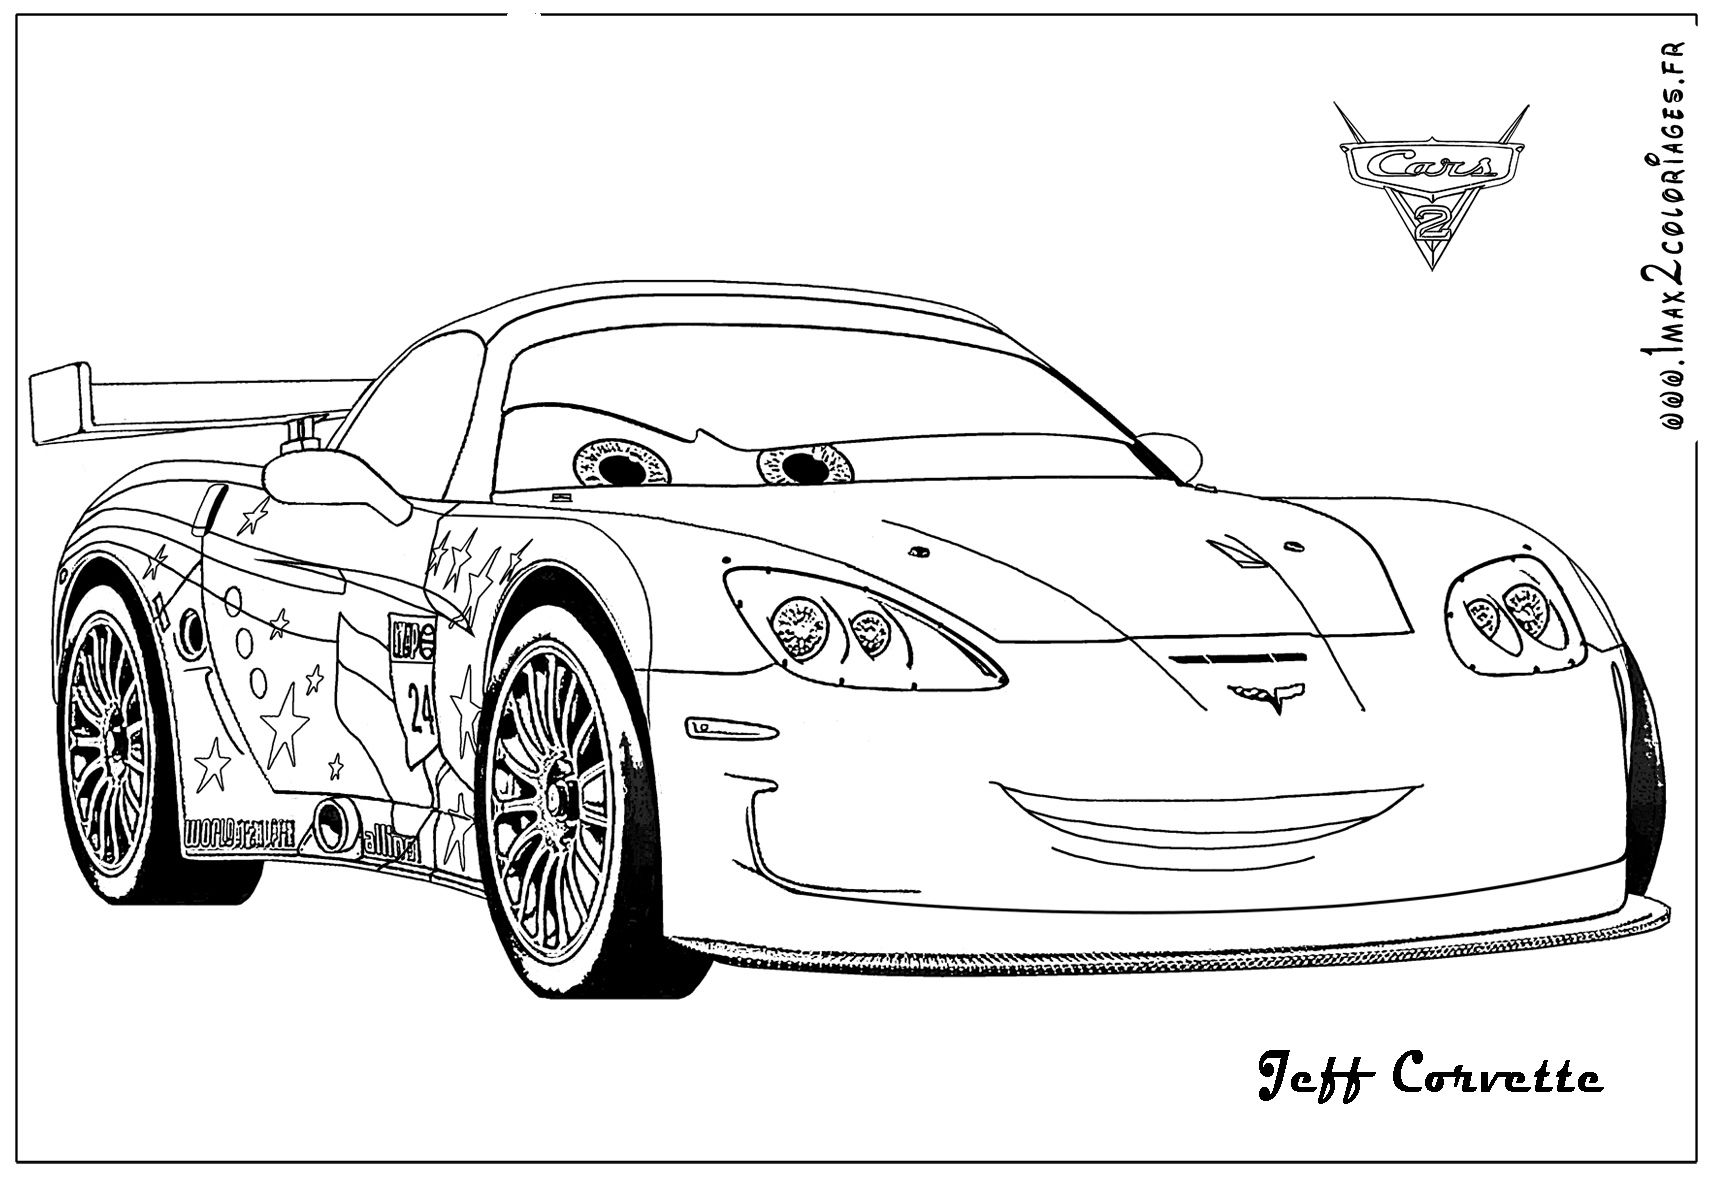 cars 2 jeff corvette coloring page projects to try pinterest